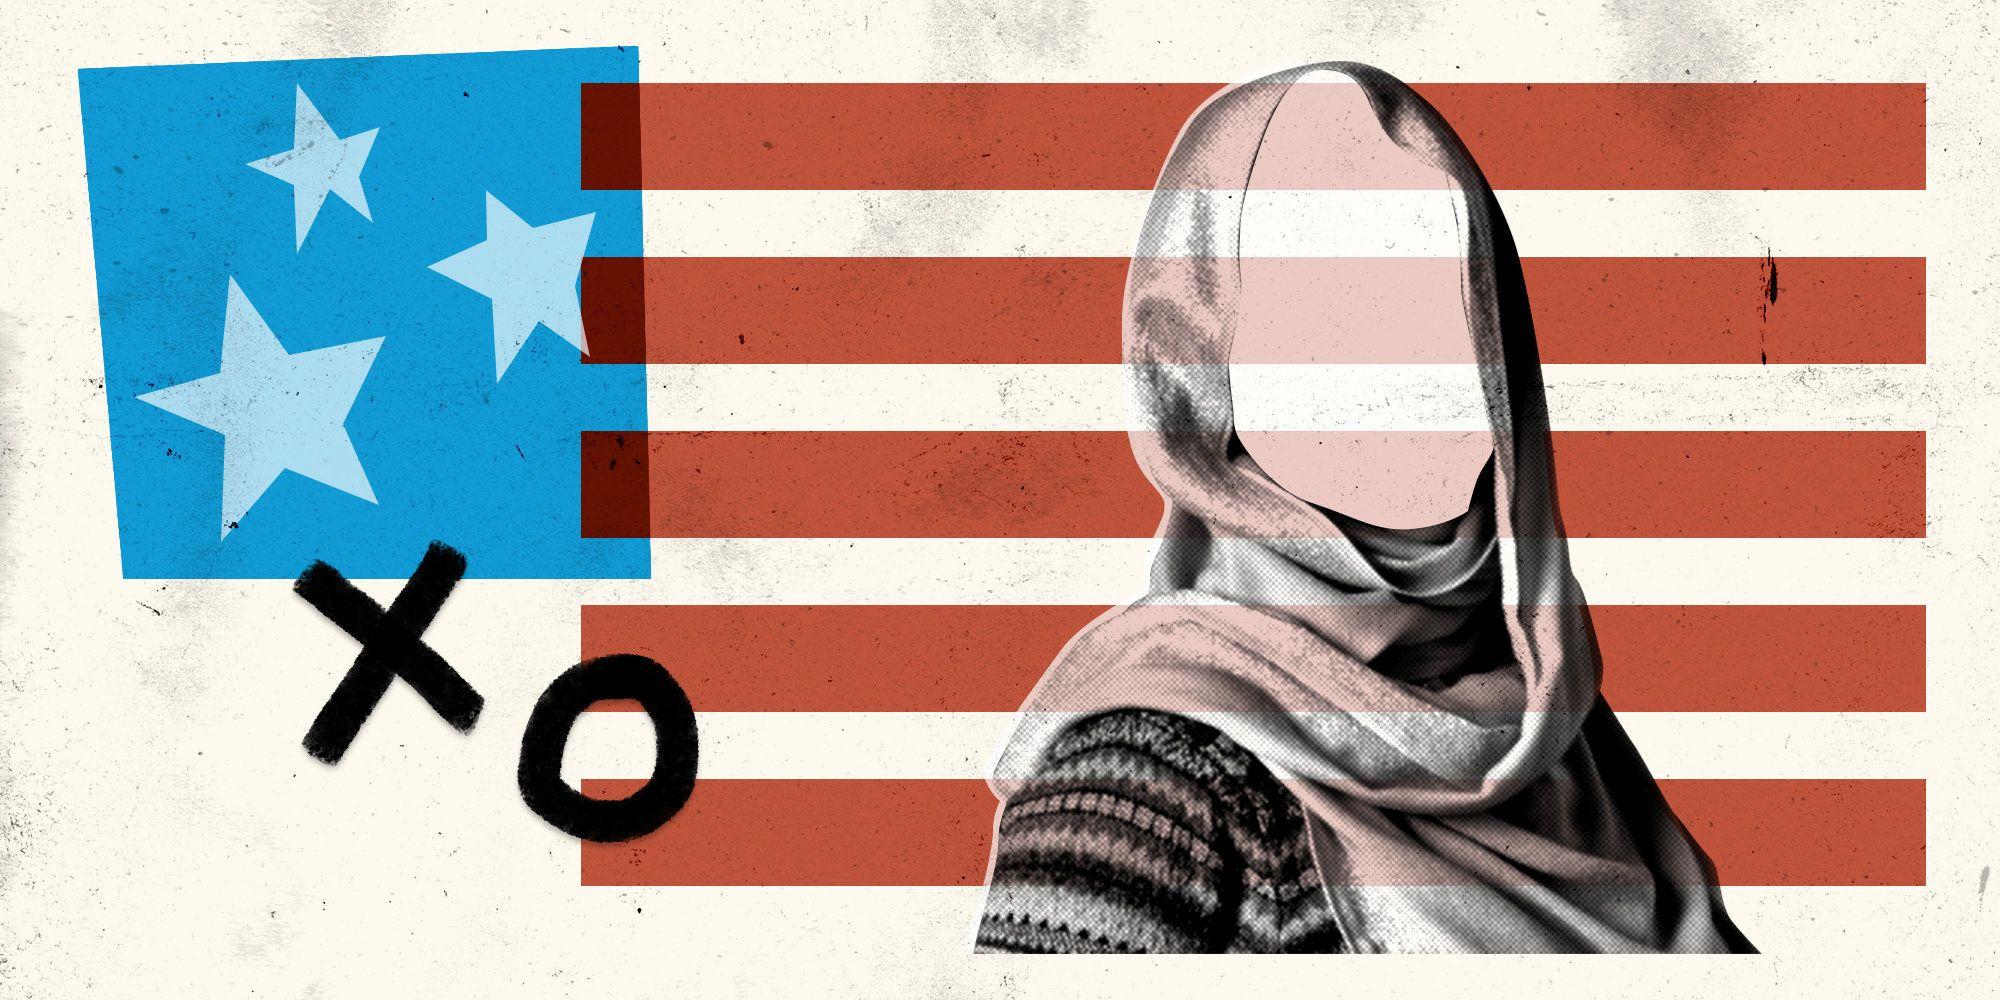 Running for office as a Muslim woman in the south